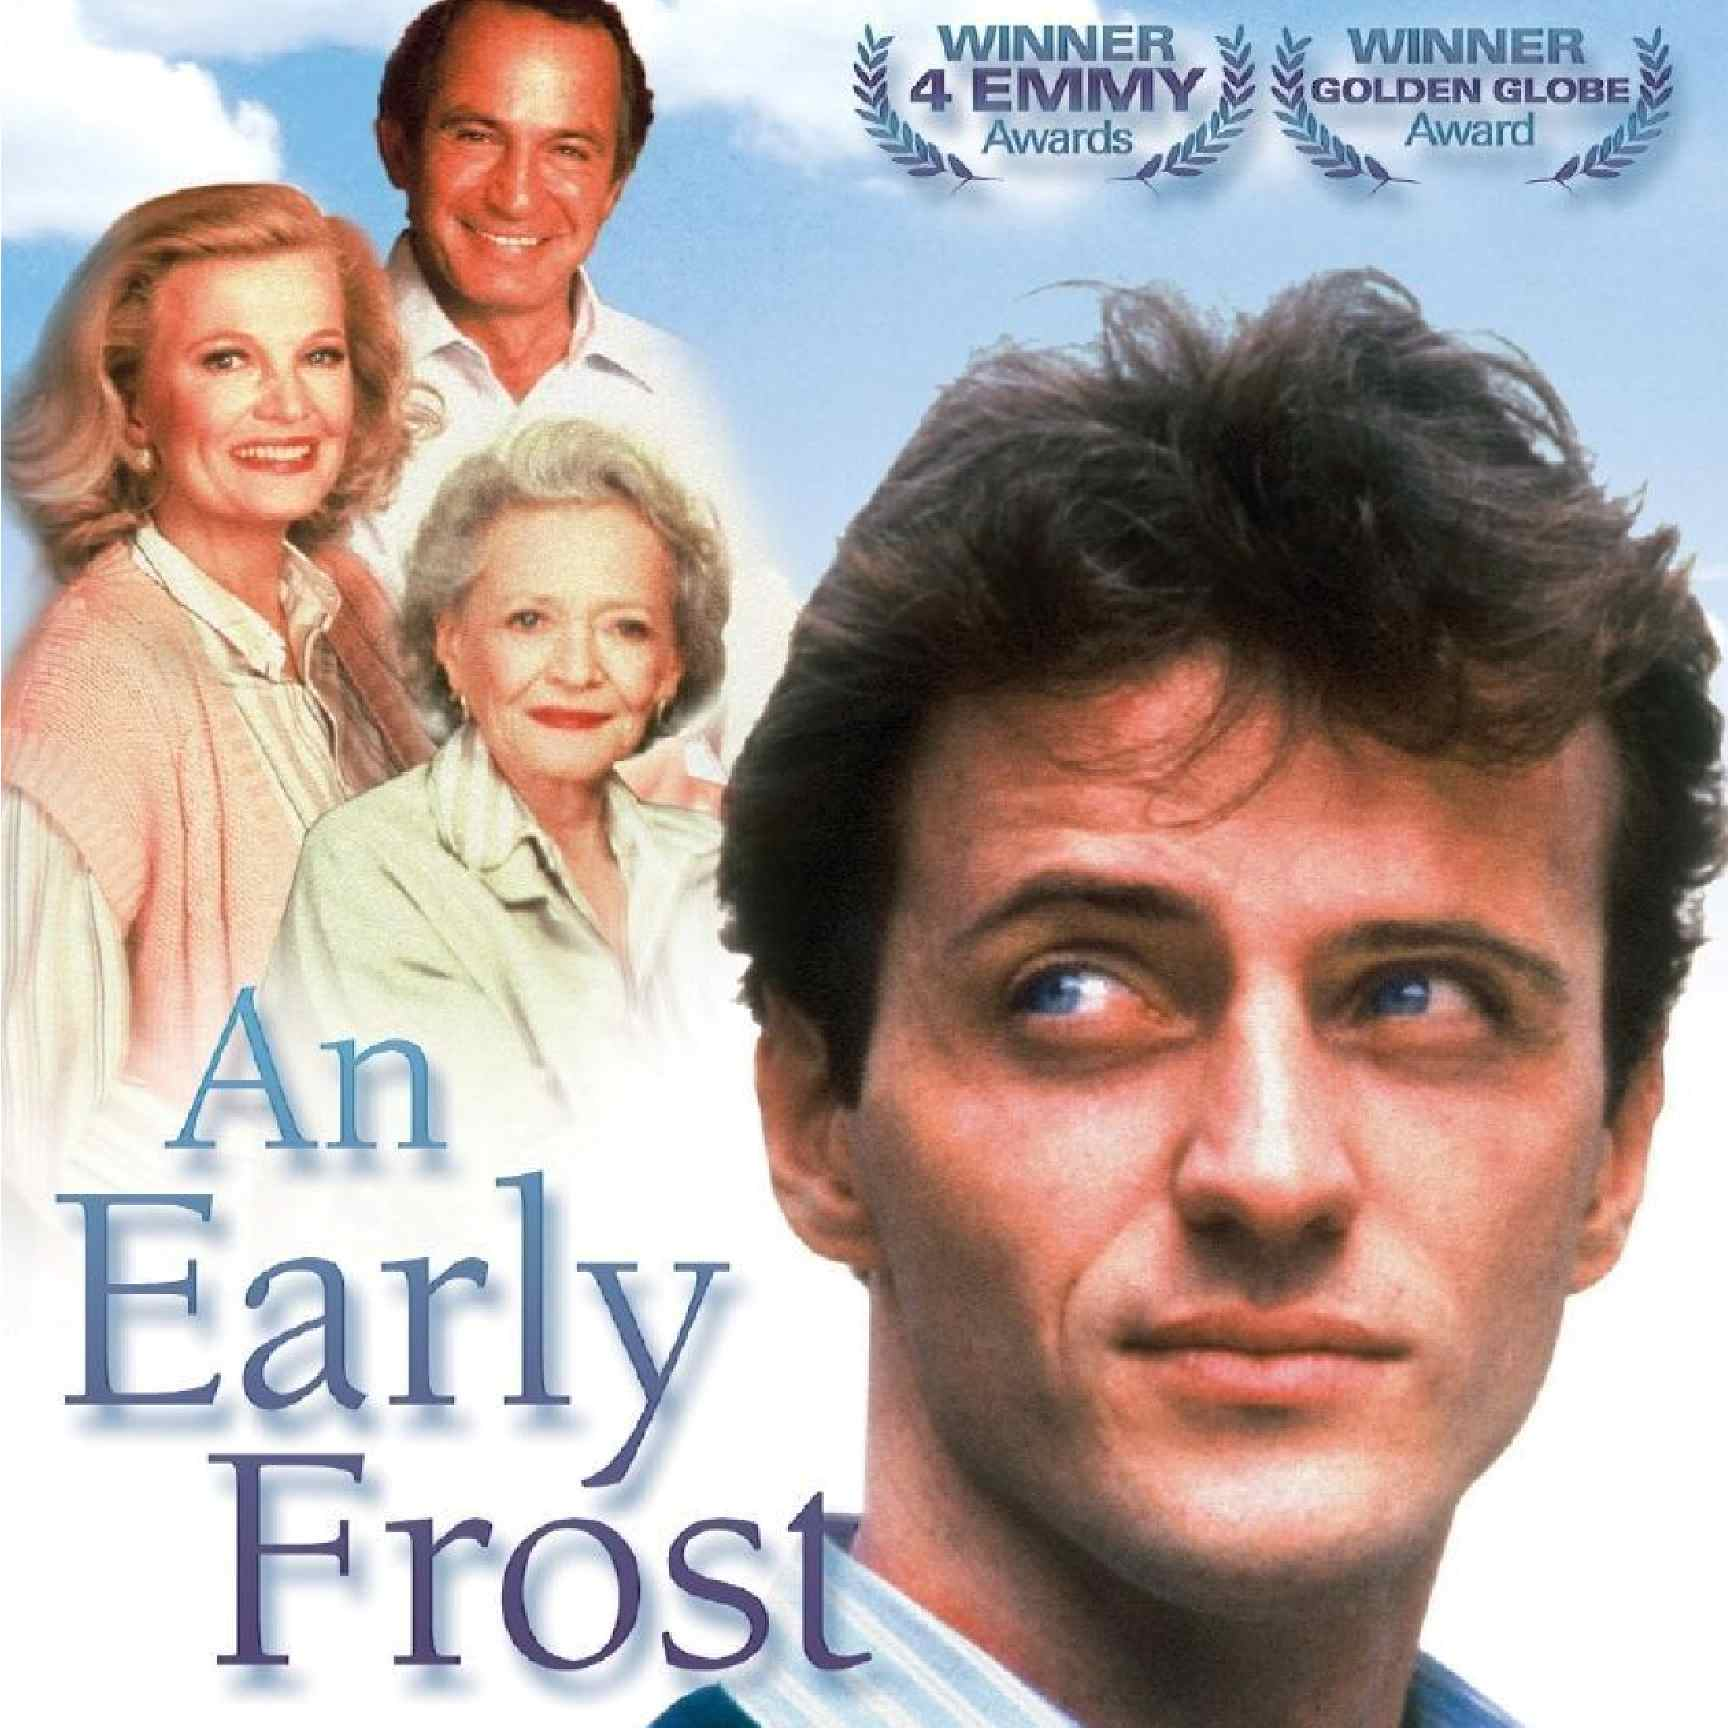 early frost movie poster